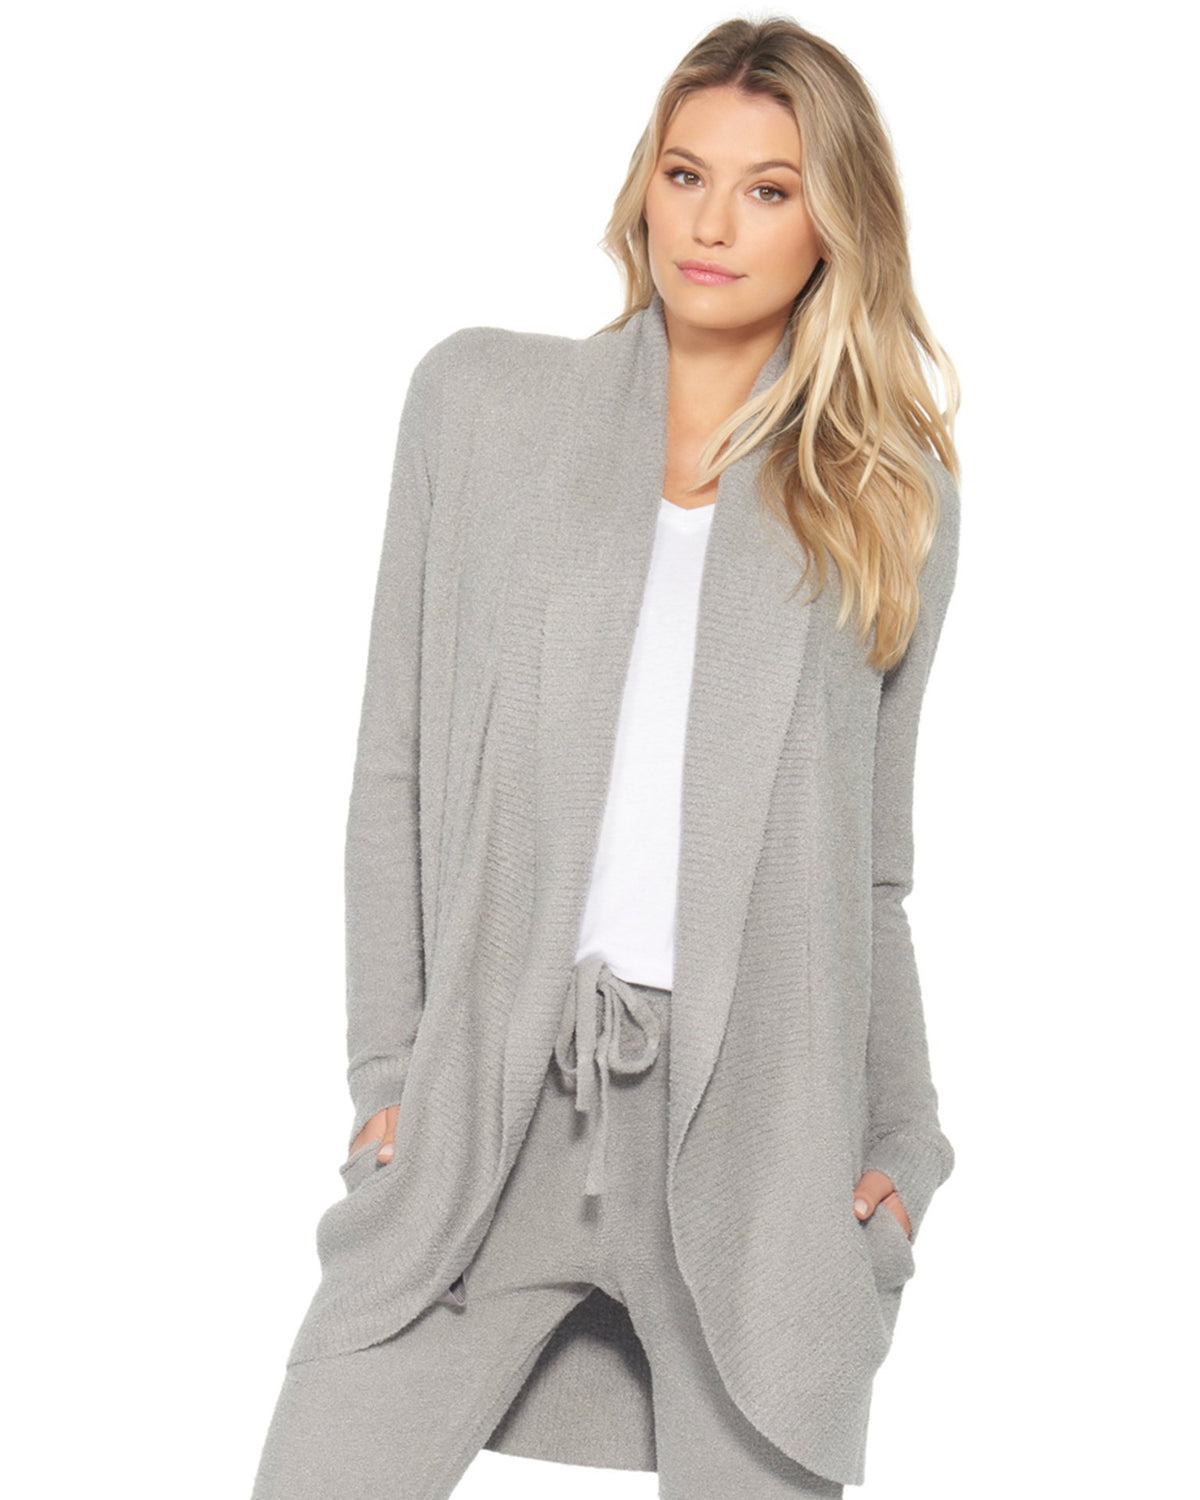 Barefoot Dreams Clothing Pewter / XS Cozychic Lite Circle Cardi